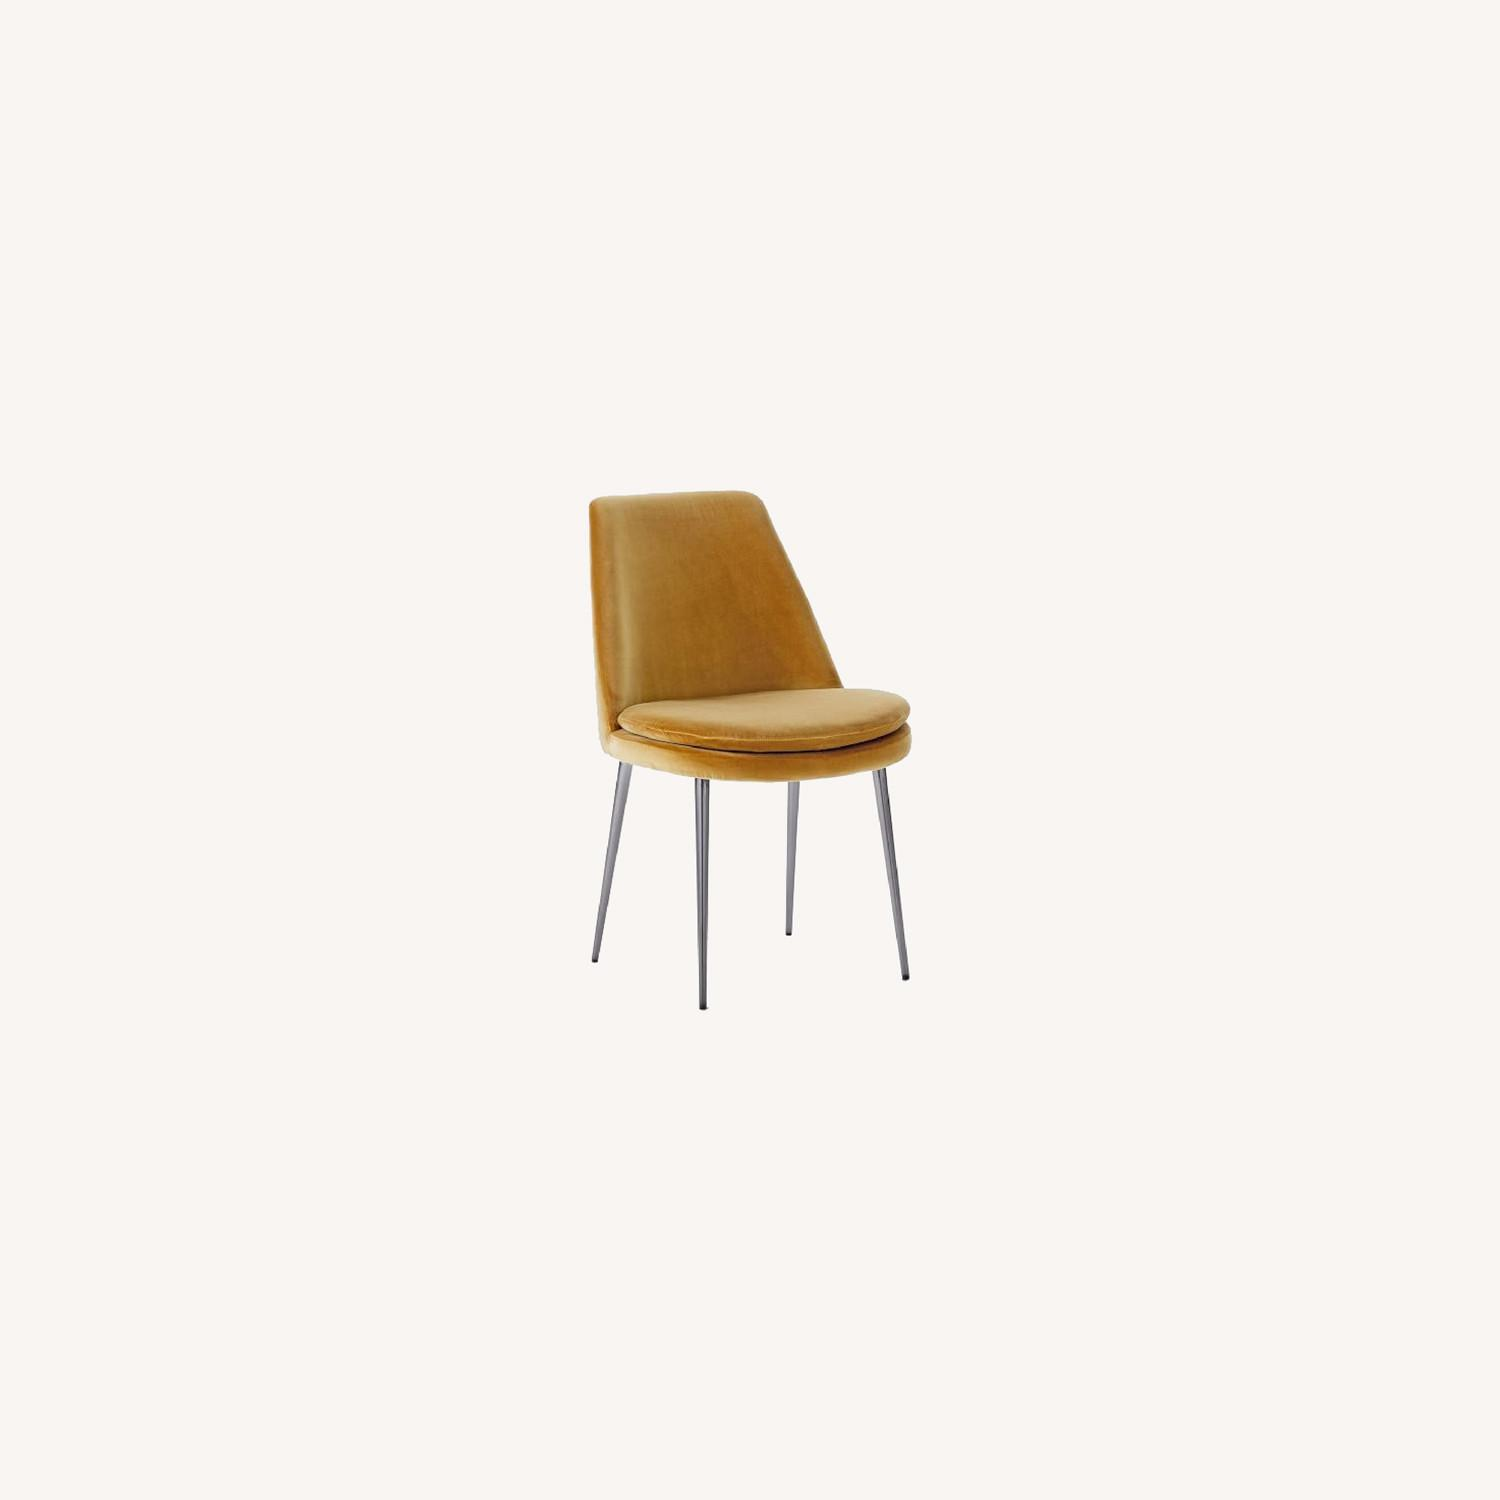 West Elm Finley LowBack Dining Chair - image-0